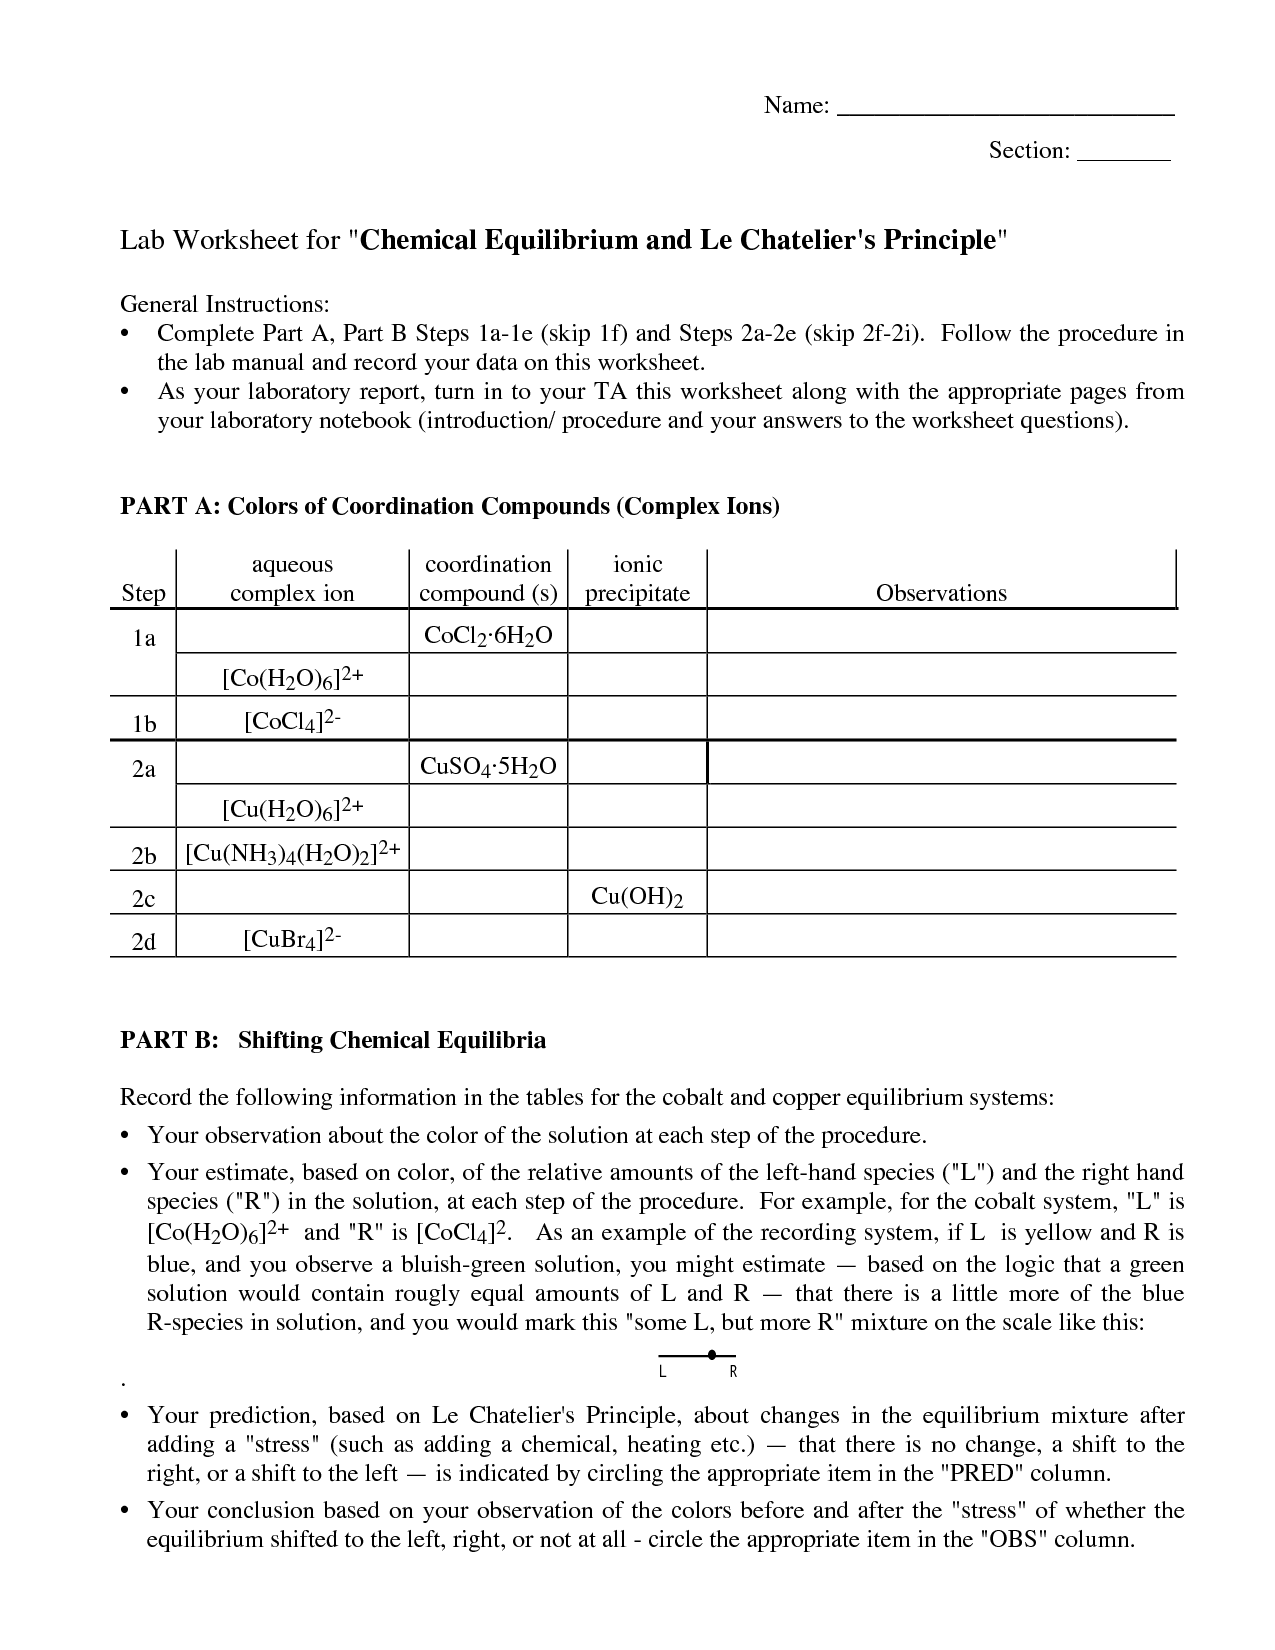 9 Best Images of Naming Simple Ionic Compounds Worksheet  Common Ionic Compounds List, Naming